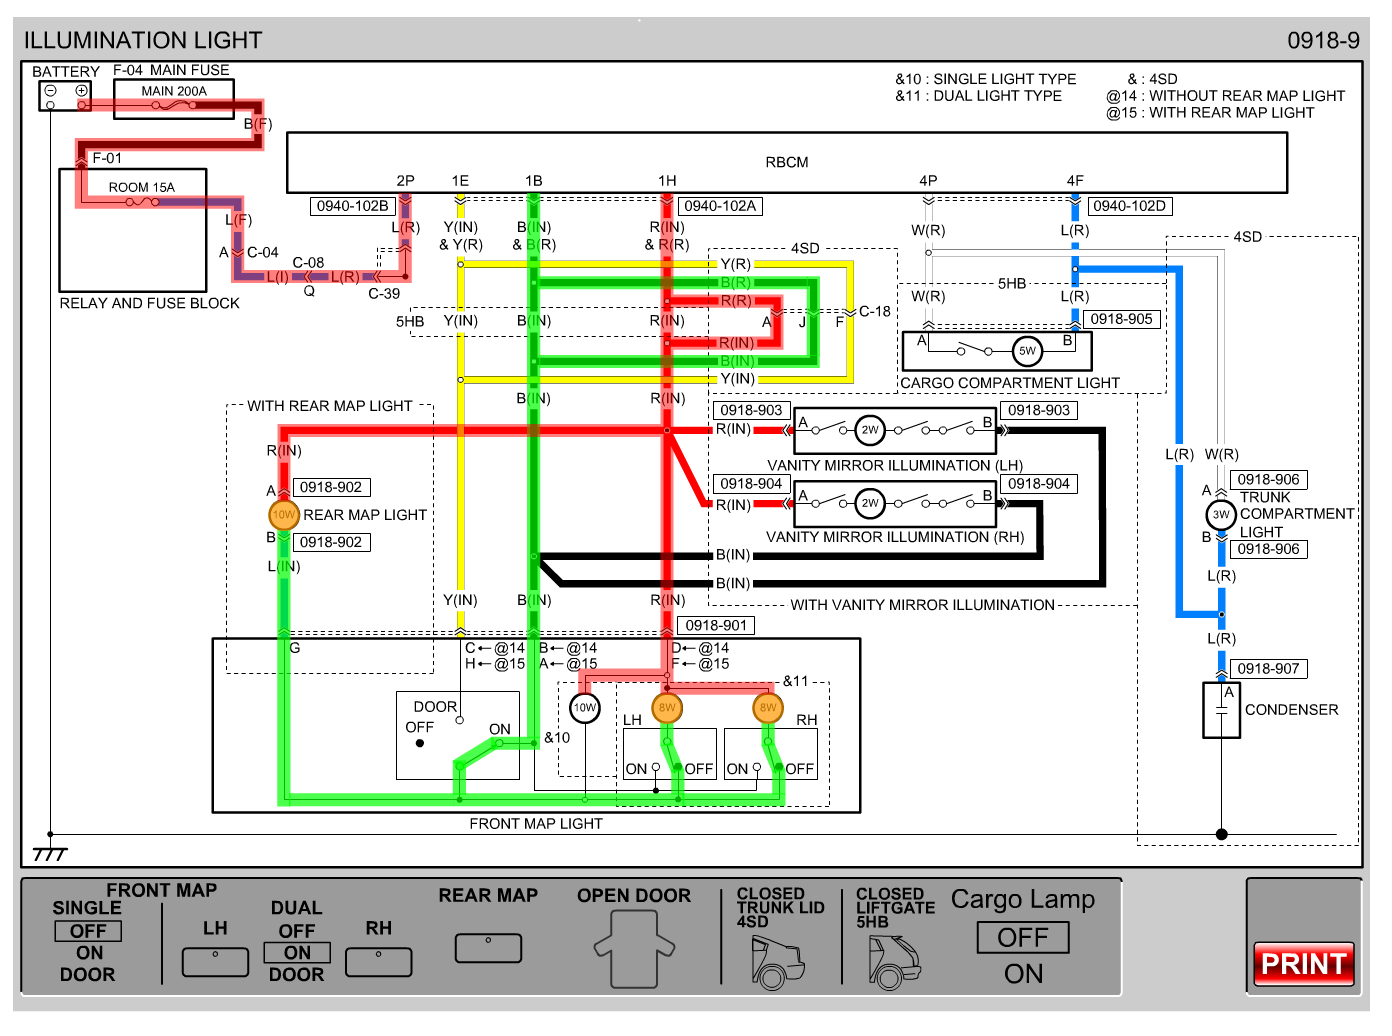 Wiring Diagram Mazda 3 2005 | Wiring Diagram - 3 Wire Trailer Light Wiring Diagram